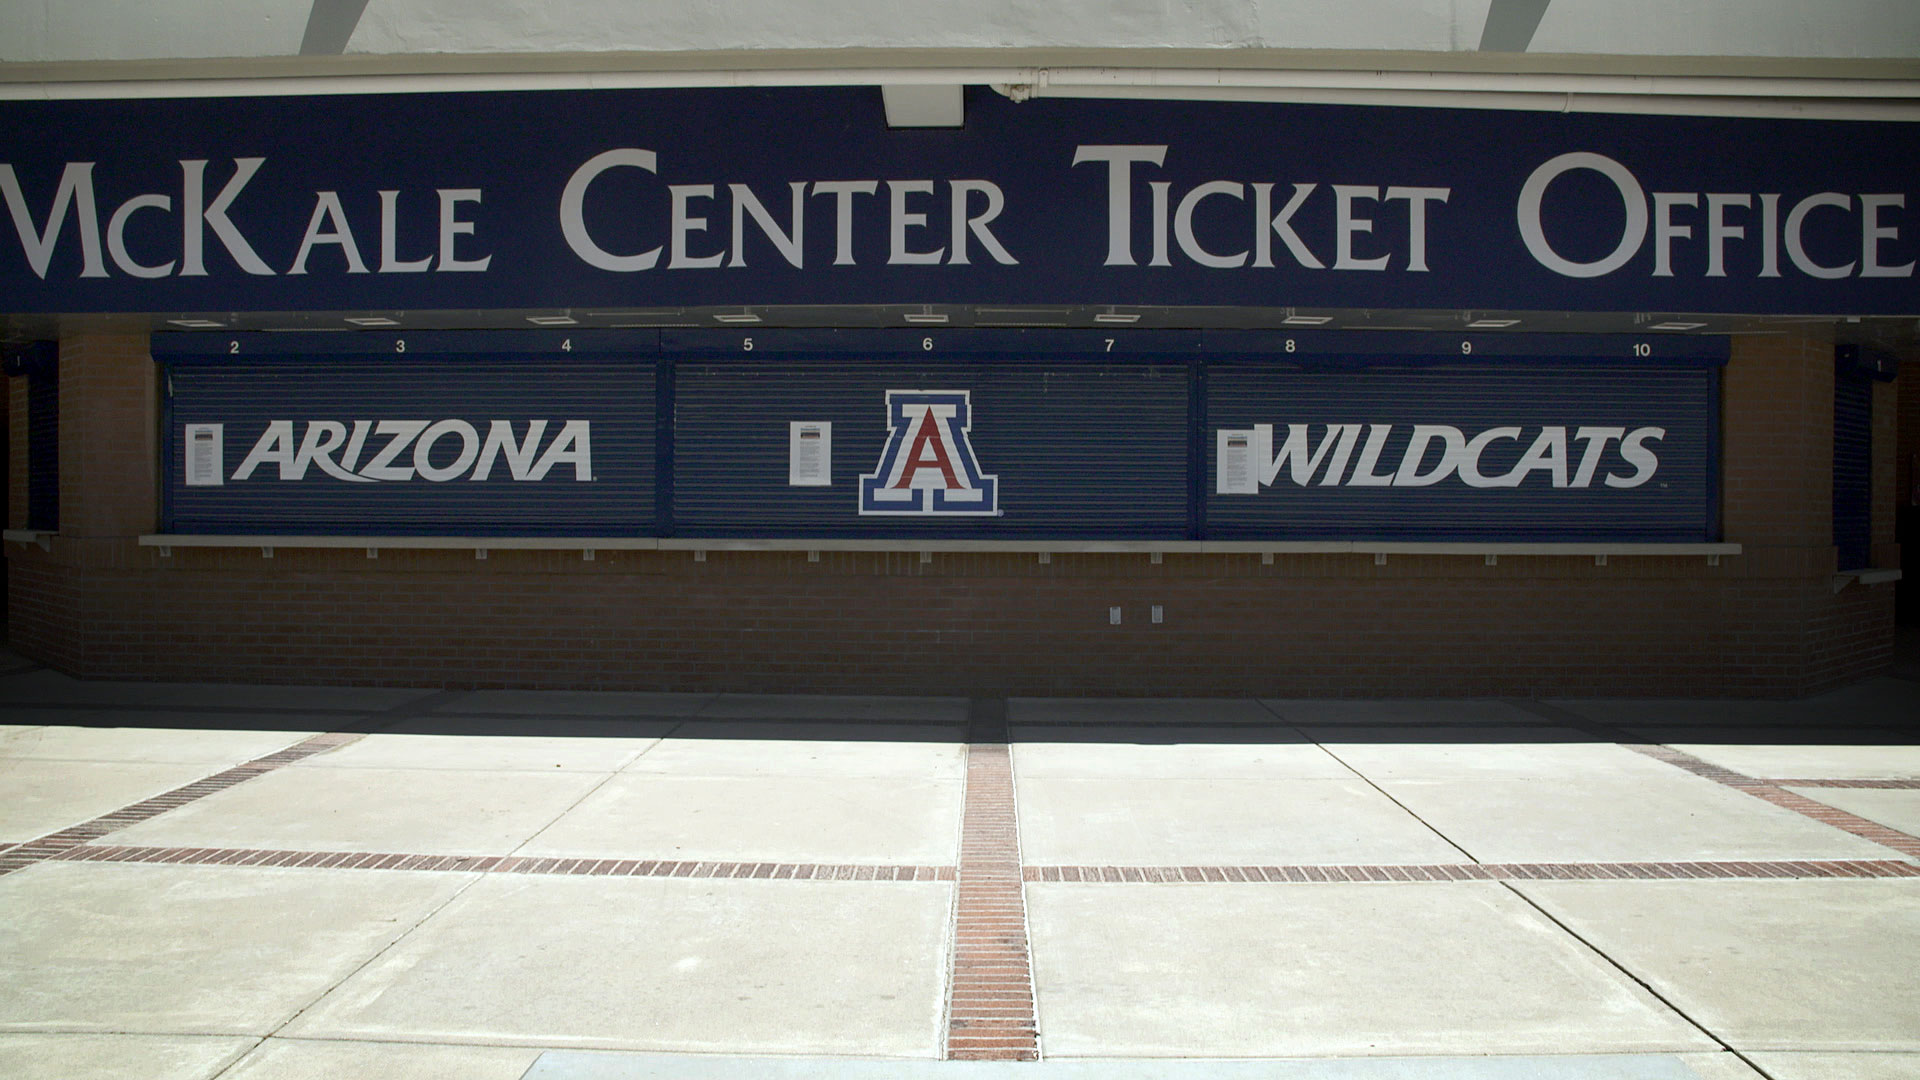 The McKale Center ticket office at the University of Arizona. July 2020.